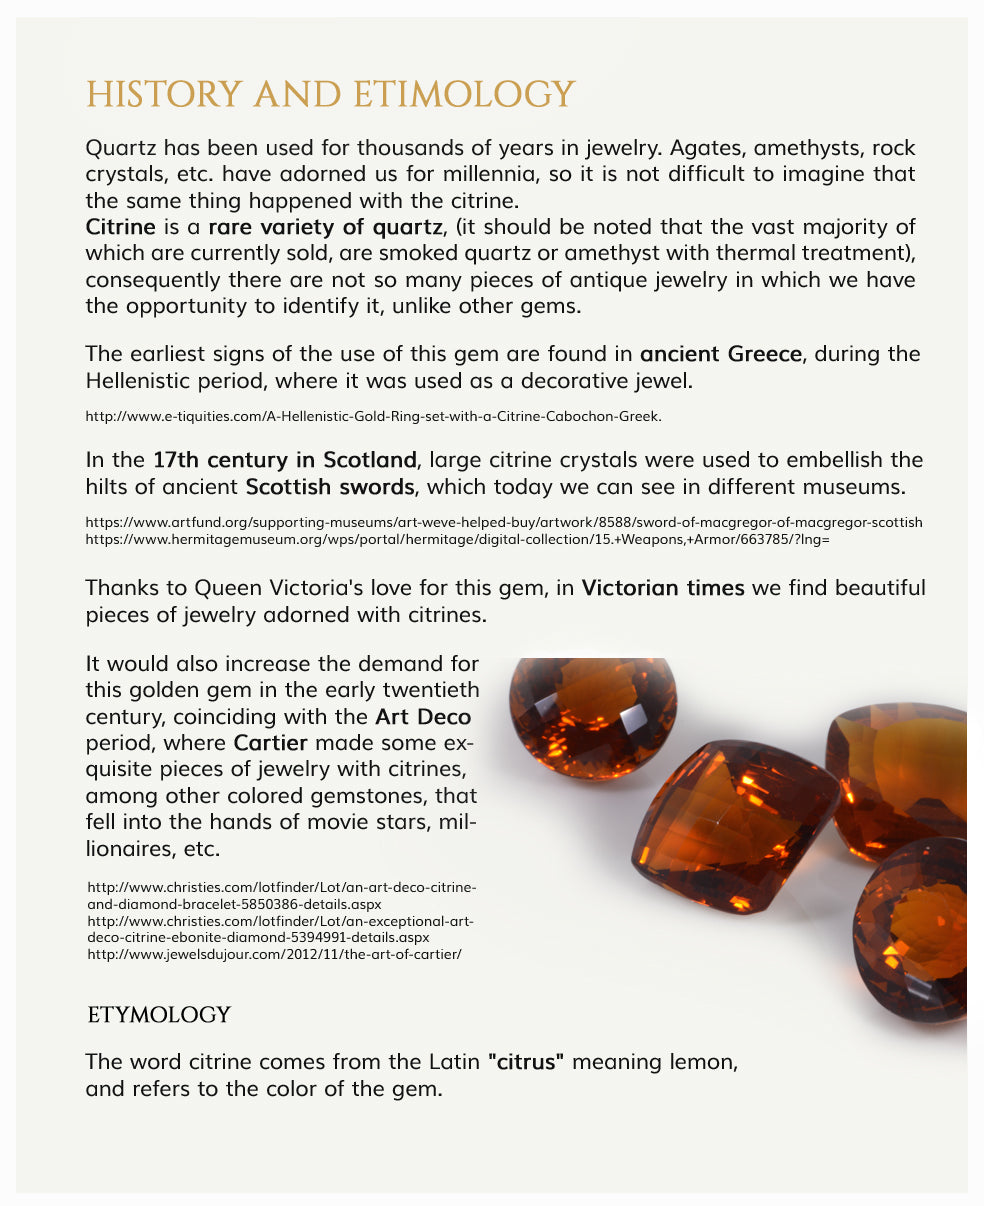 History and Etymology of Citrine